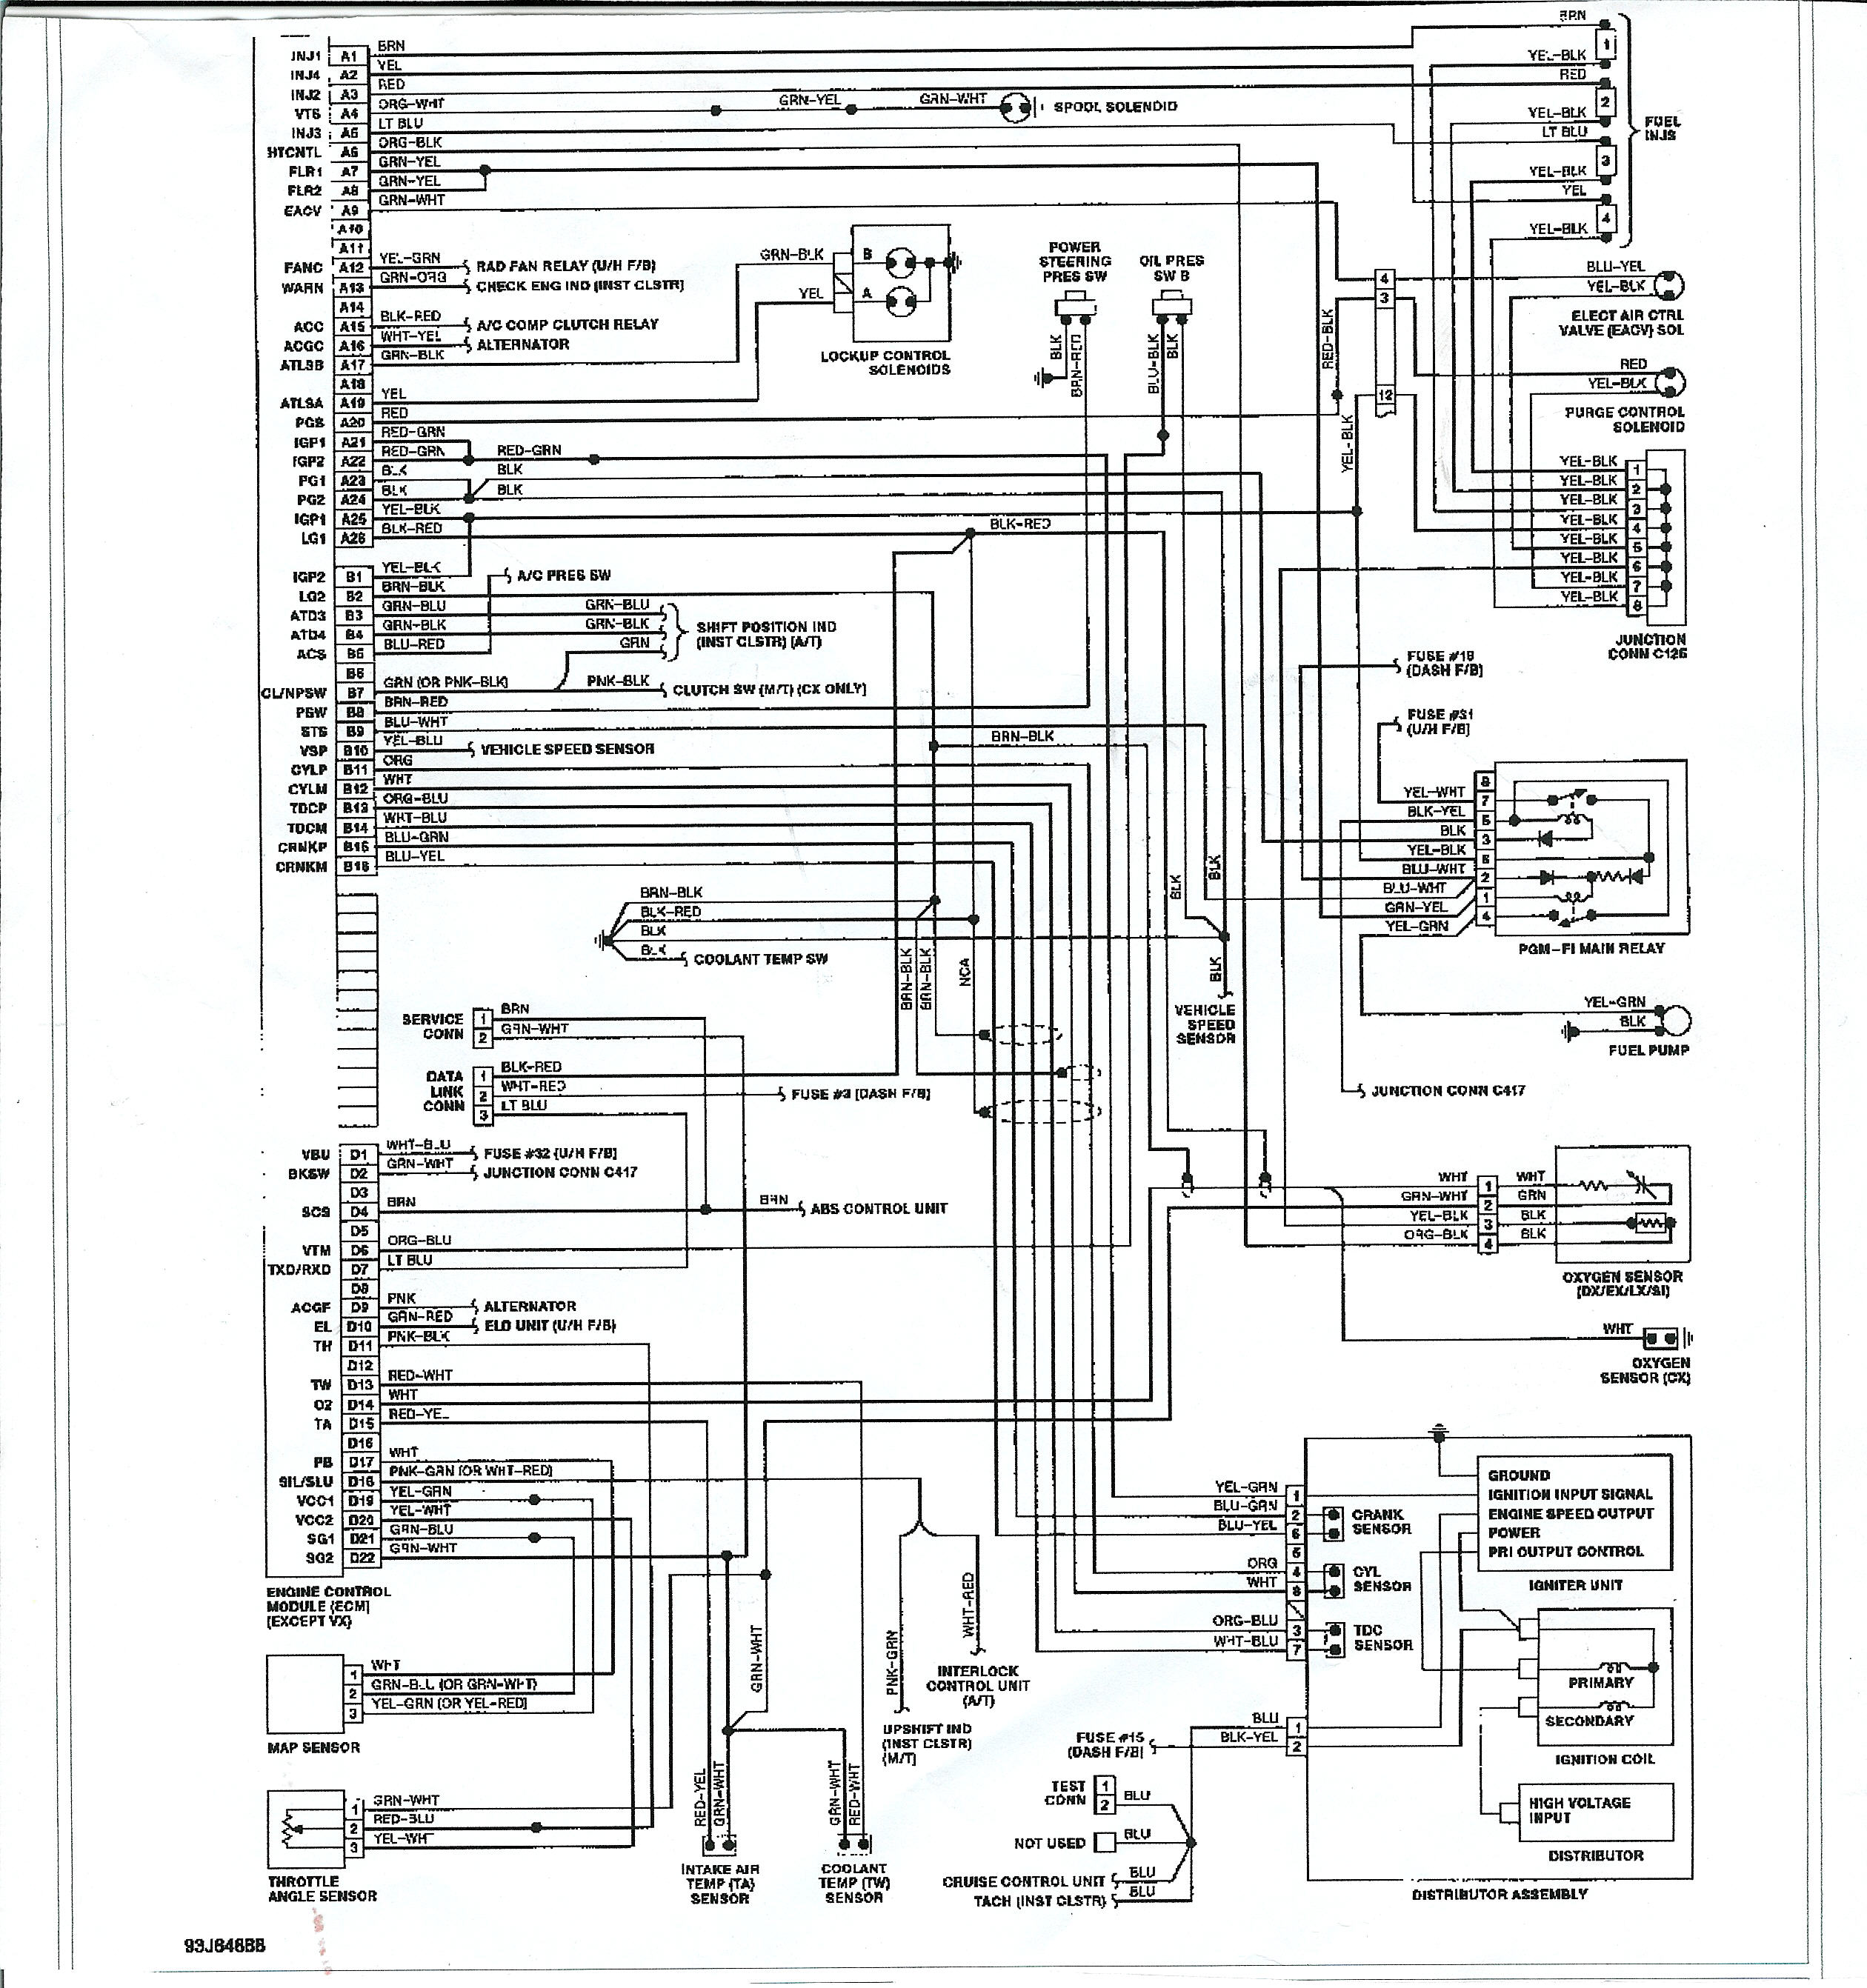 2003 honda civic hybrid stereo wiring diagram 350 5 7 engine integra tcm schematic for auto swap tech